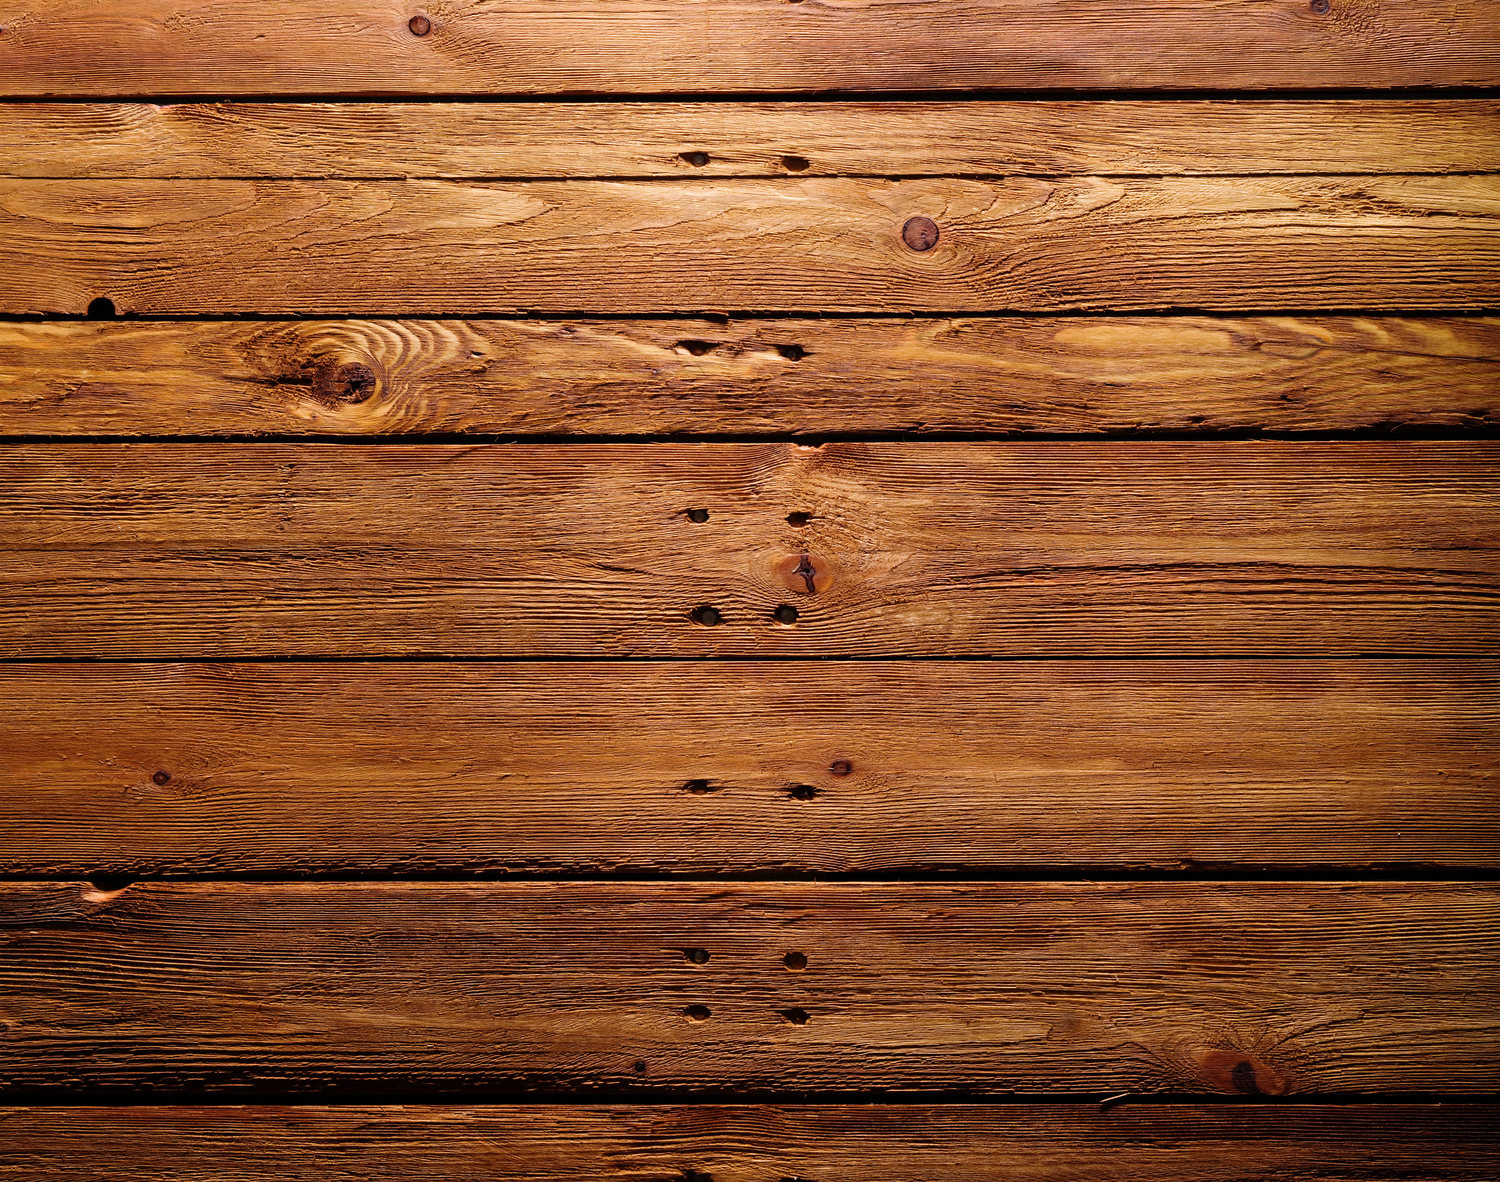 Wood table background hd - Annual Review 2015